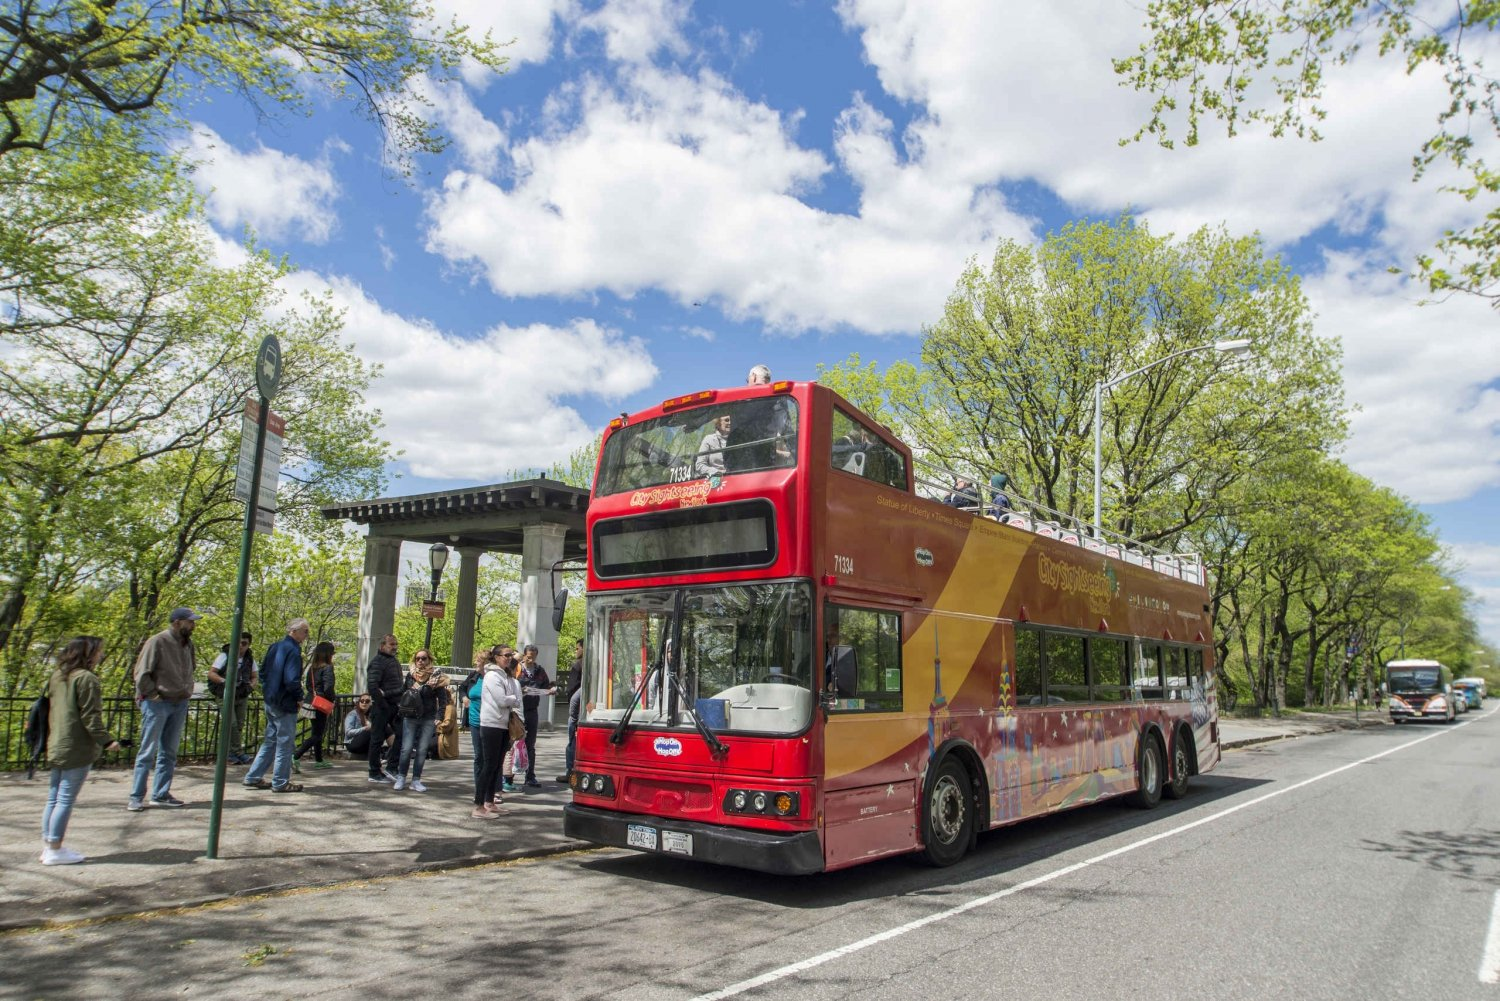 New Hop-On Hop-Off Bus Tour and Attractions